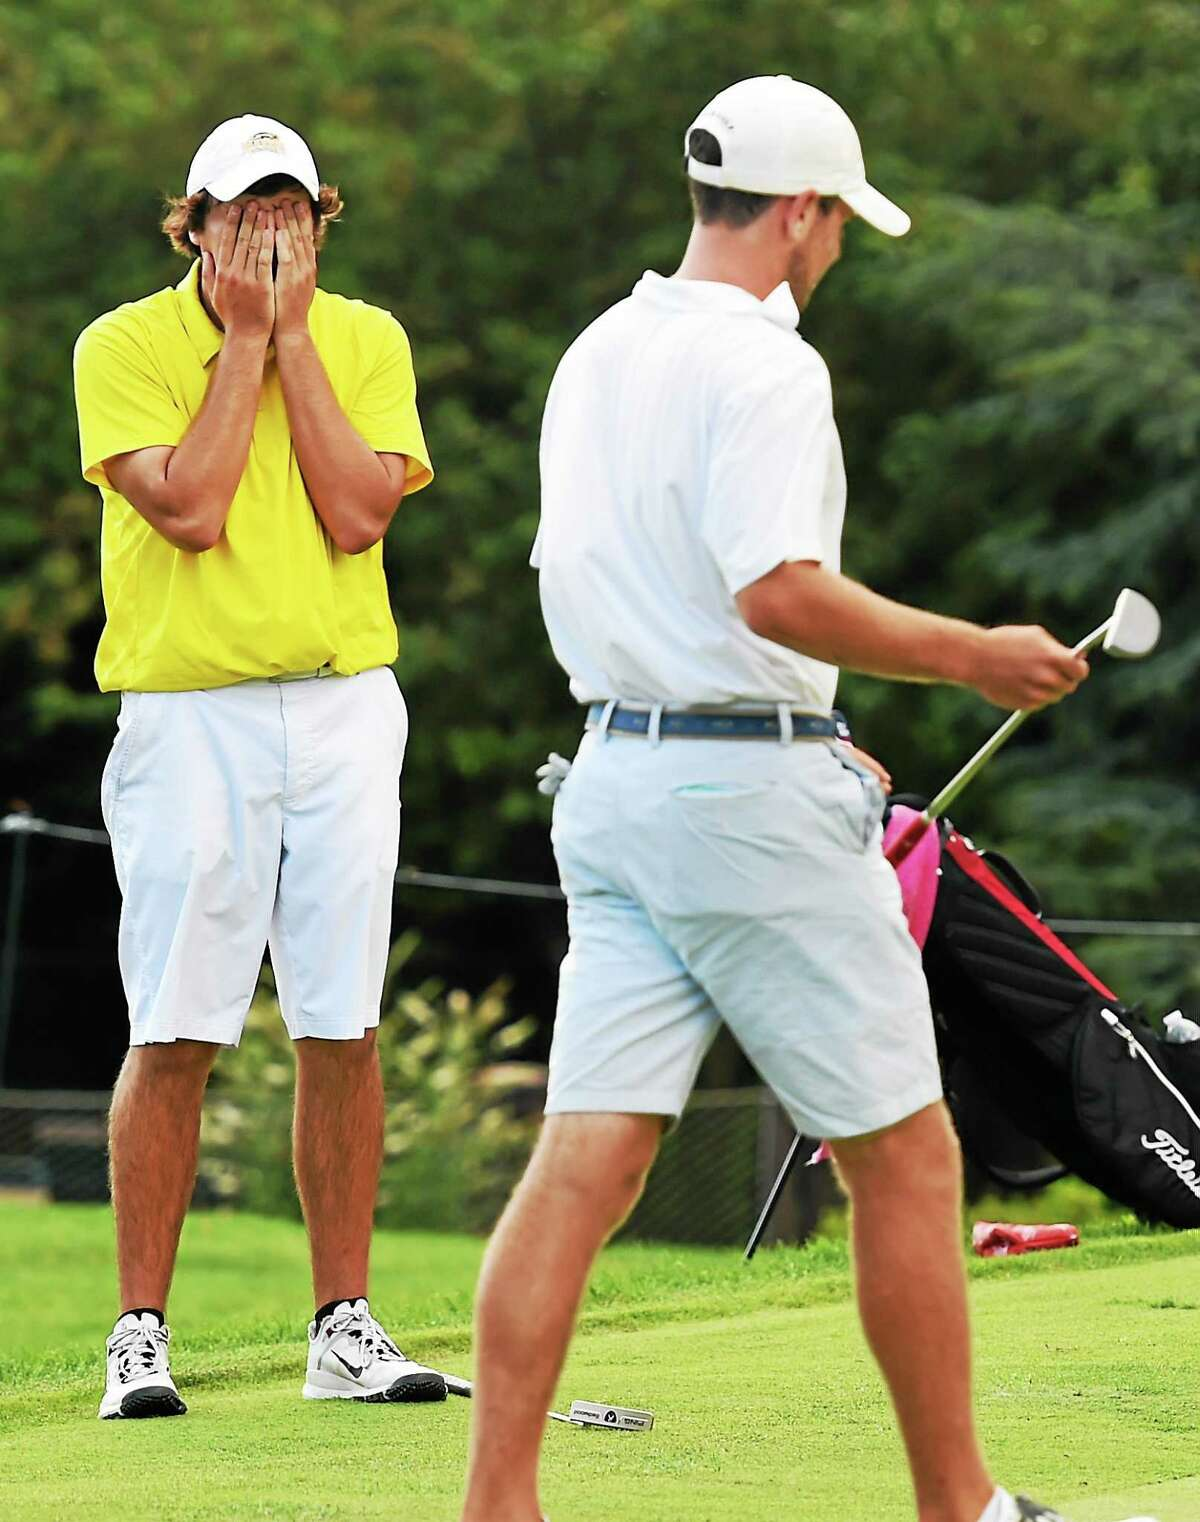 Brock Kovac, left, reacts to putting problems on the 18th green as Will Bernstein prepares to play in the 13th Northern Junior Championship.